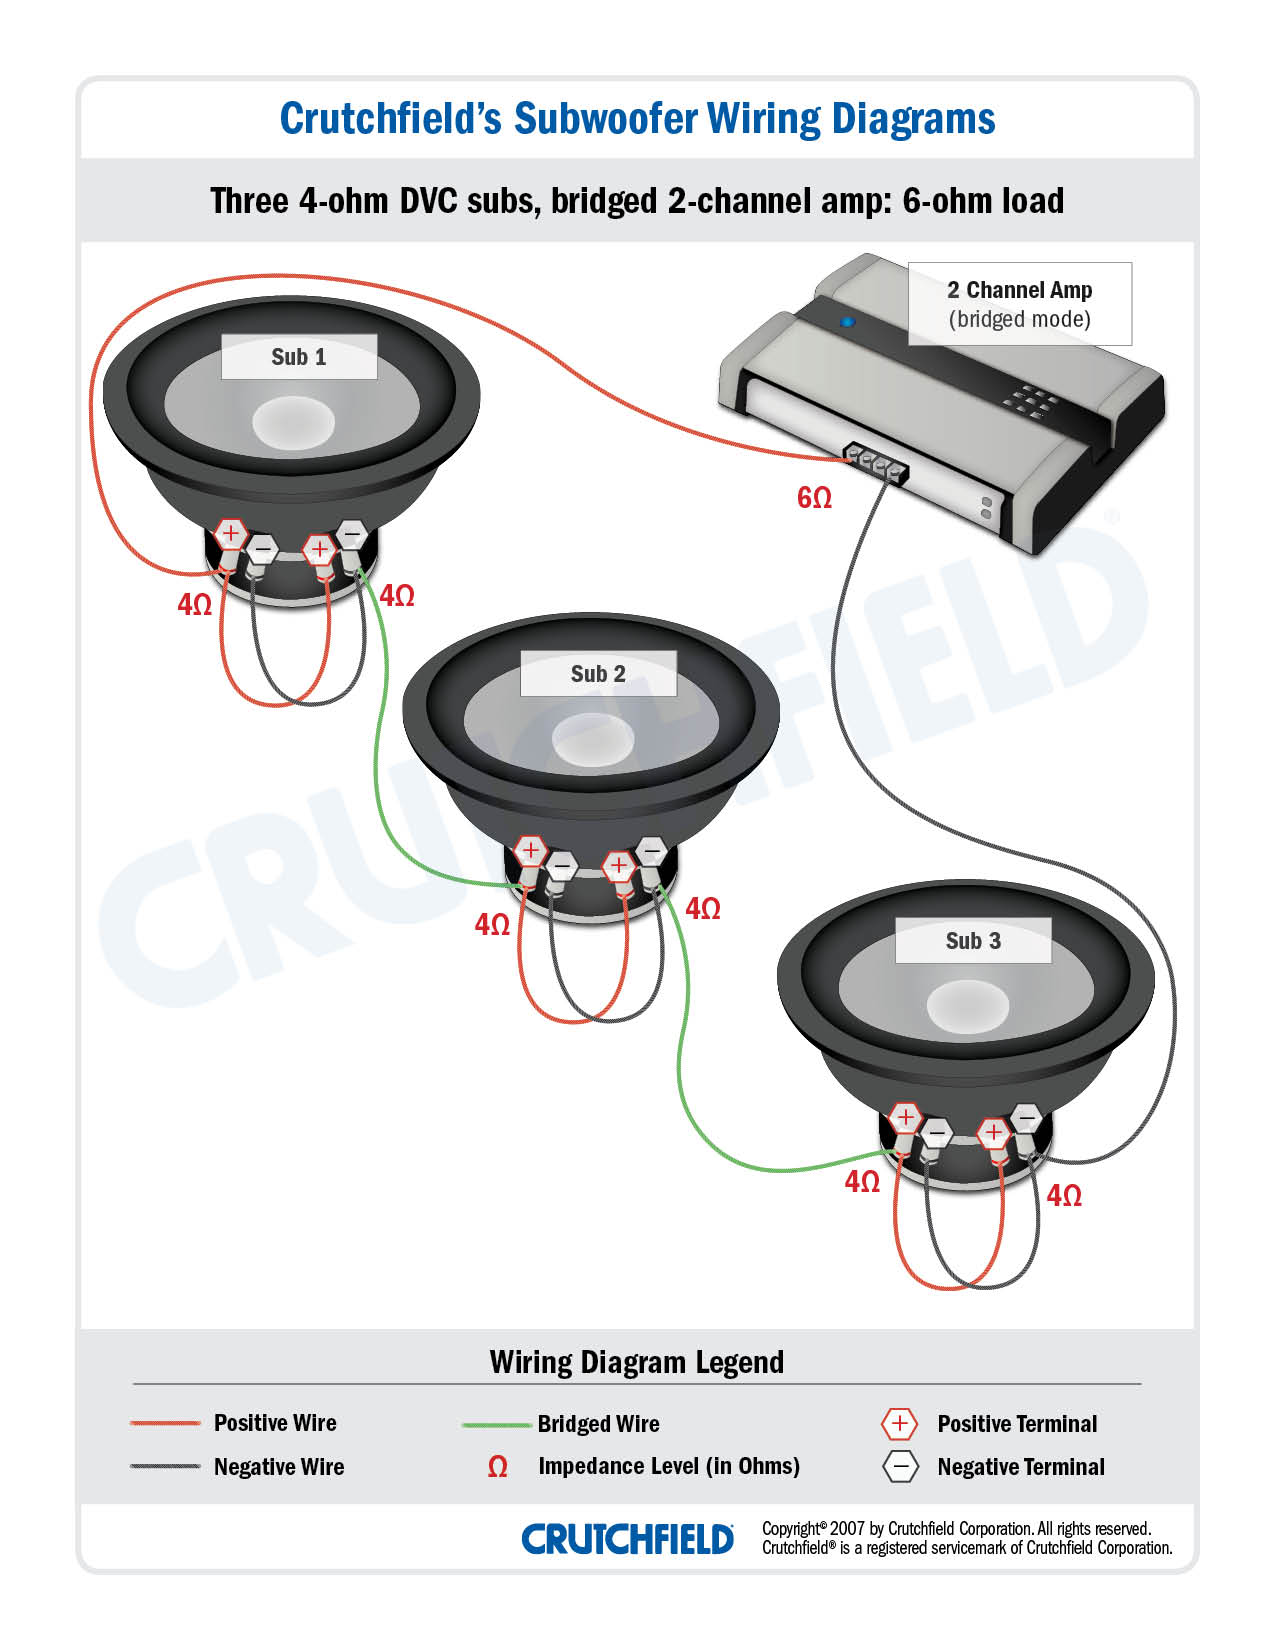 3 DVC 4 ohm 2 ch subwoofer wiring diagrams Dual Voice Coil Wiring at cos-gaming.co